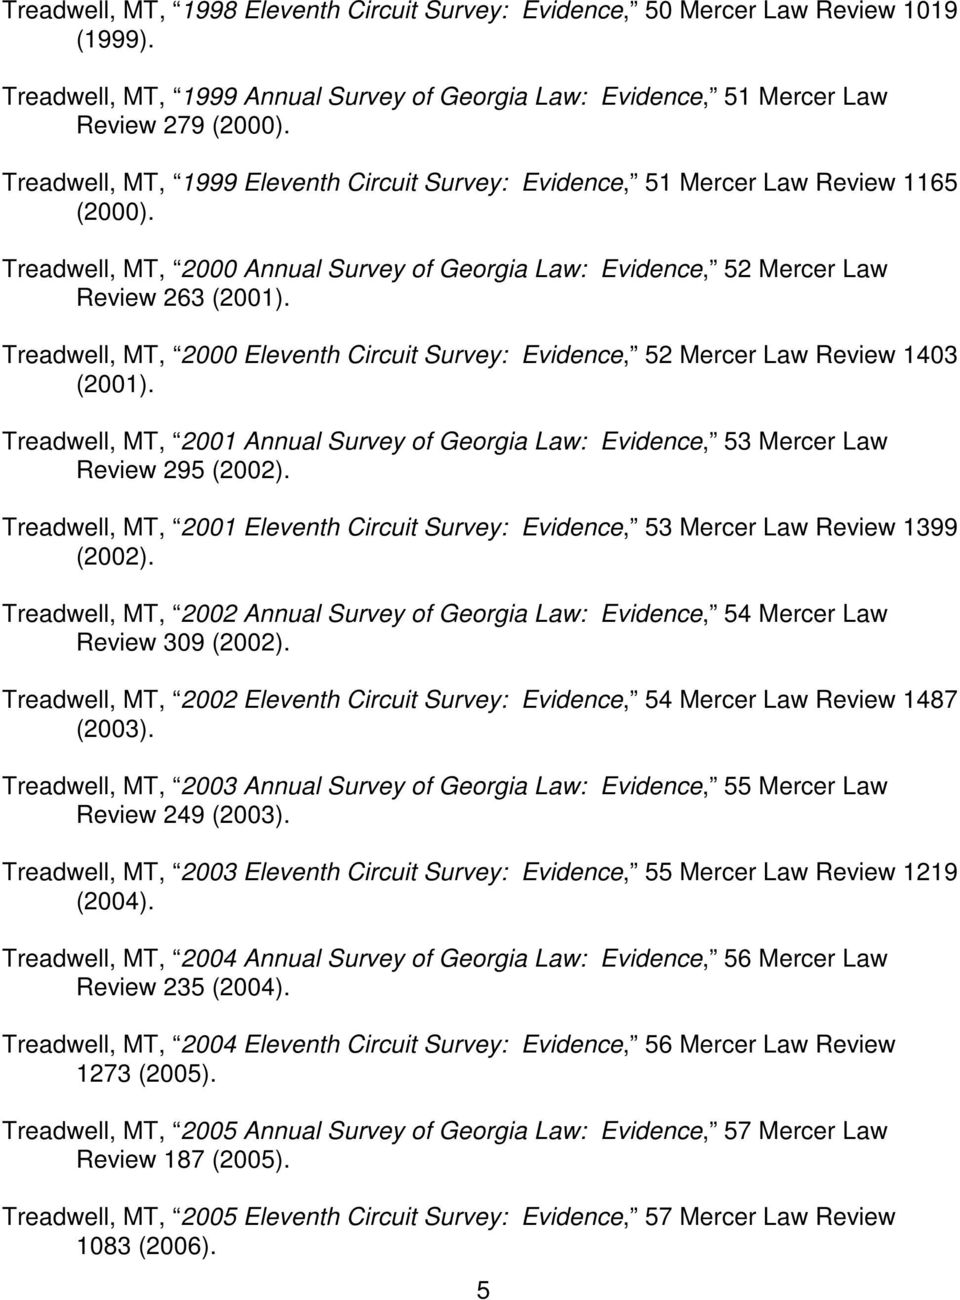 Treadwell, MT, 2000 Eleventh Circuit Survey: Evidence, 52 Mercer Law Review 1403 (2001). Treadwell, MT, 2001 Annual Survey of Georgia Law: Evidence, 53 Mercer Law Review 295 (2002).